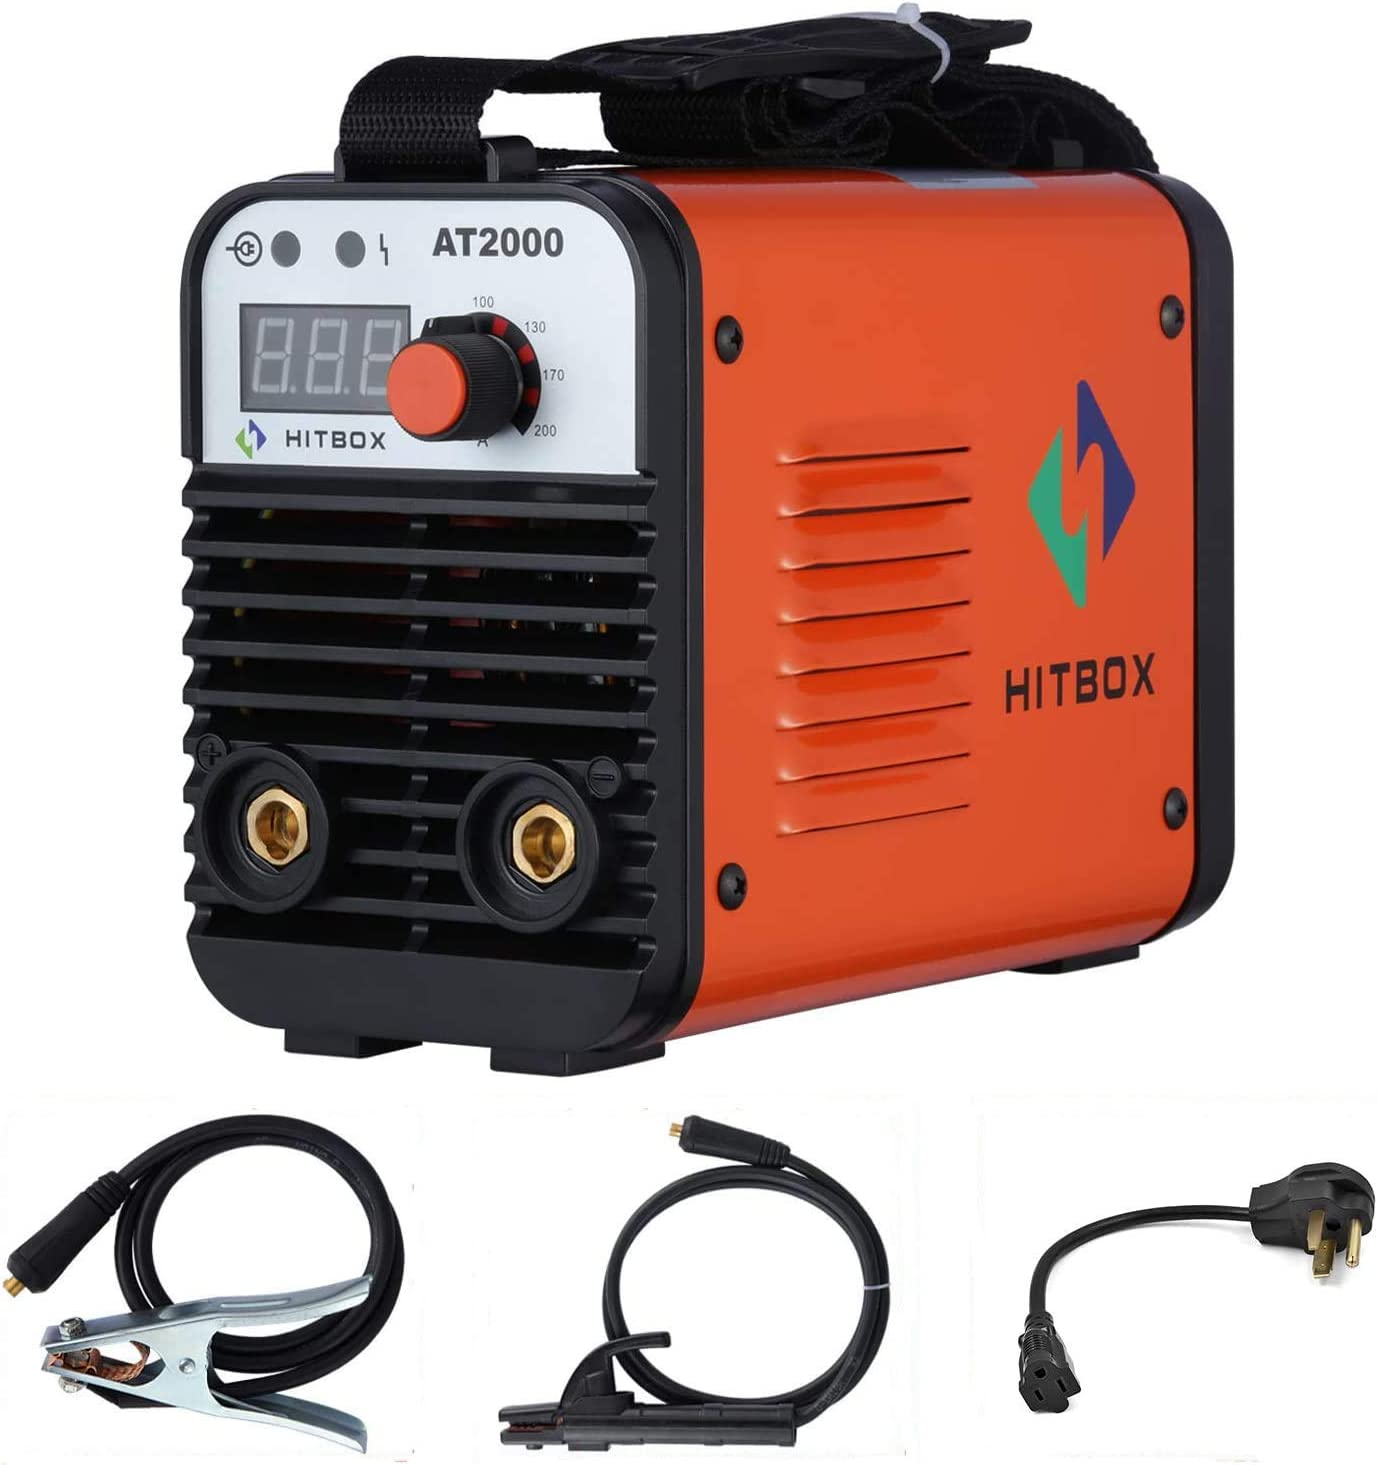 HITBOX Dual Volt Welding Machine